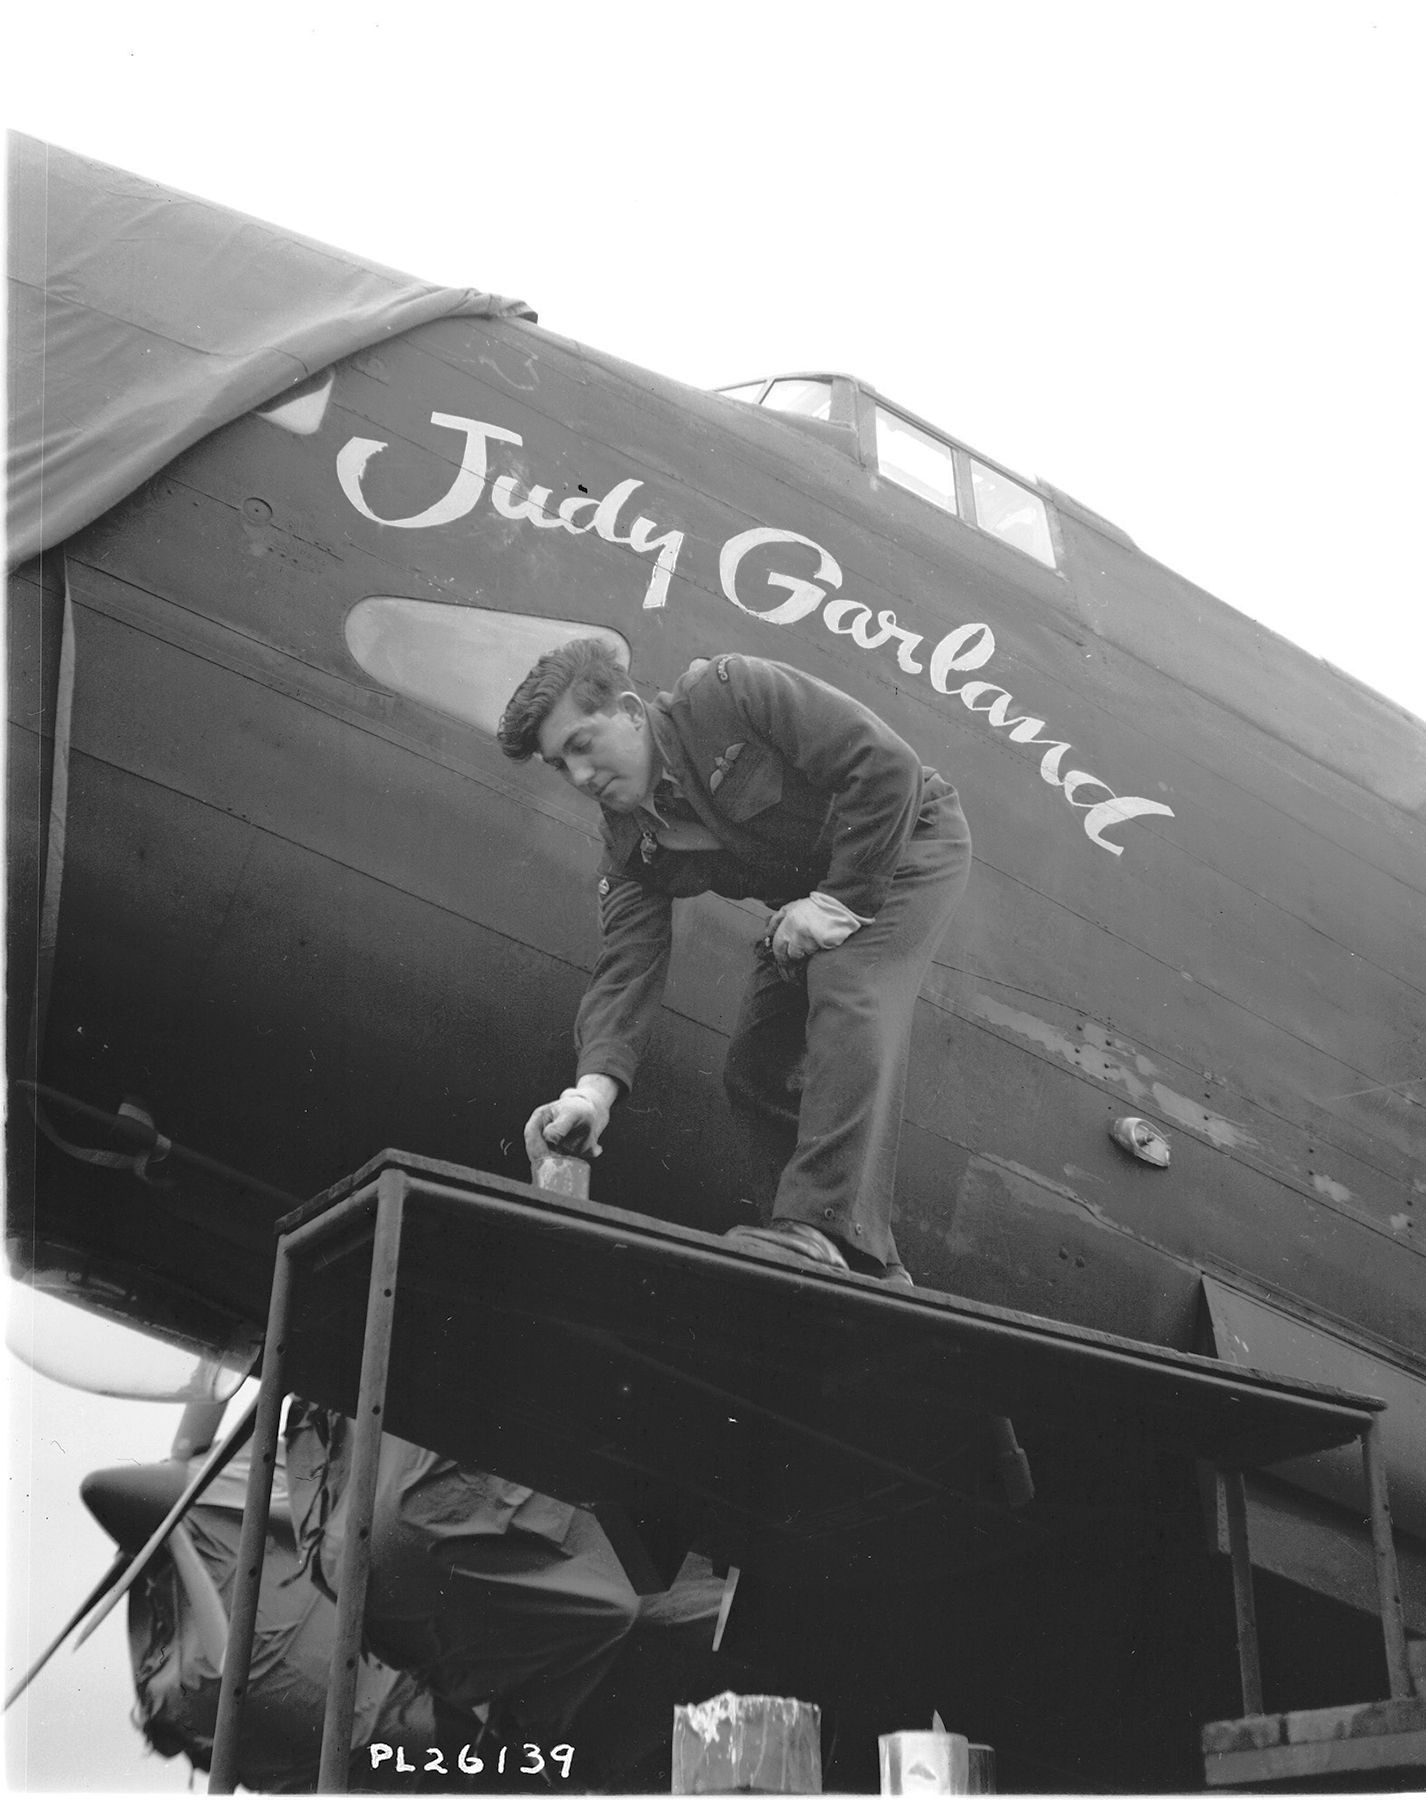 "On November 16, 1943, Flight Sergeant J. Mawson of Kingston, Ontario paints a design displaying the name of film star Judy Garland on a 427 Squadron aircraft. On May 24, 1943, American film giant Metro-Goldwyn-Mayer (MGM) had adopted 427 Squadron and allowed the names of such stars as Judy Garland, Lana Turner and Joan Crawford to be displayed on the squadron's aircraft. As legend has it, MGM provided all 427 Squadron ""Lions: with a lifetime pass to its theaters across North America. In addition, MGM presented a bronze lion to the squadron. This gift and the affiliation with the MGM lion mascot strengthened the squadron's Lion nickname. PHOTO: DND Archives, PL-26139"